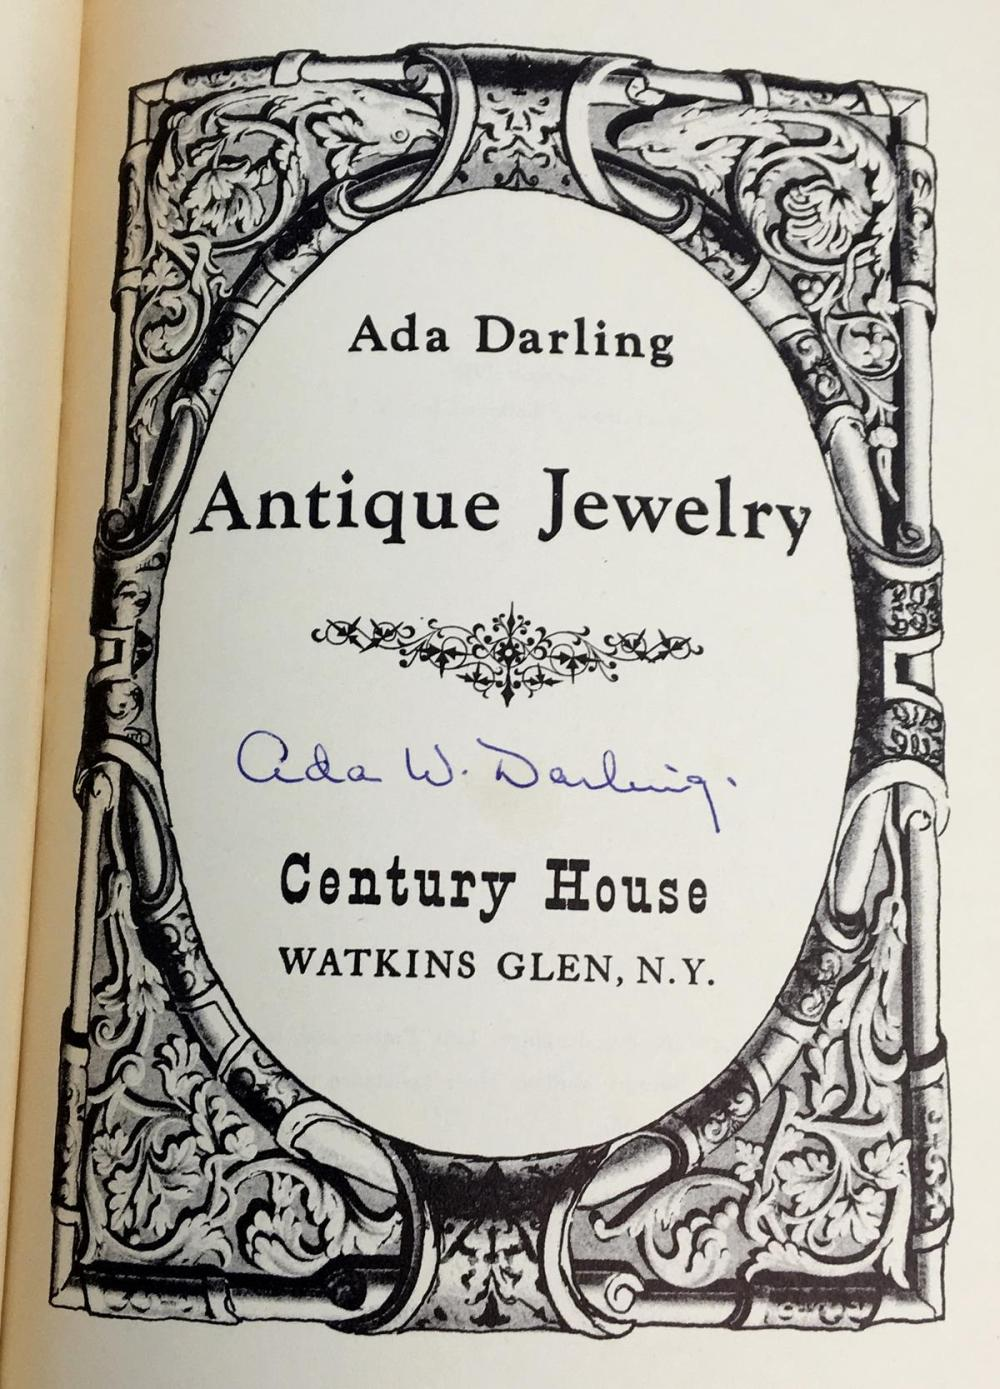 1953 Antique Jewelry by Ada Darling SIGNED Illustrated FIRST EDITION